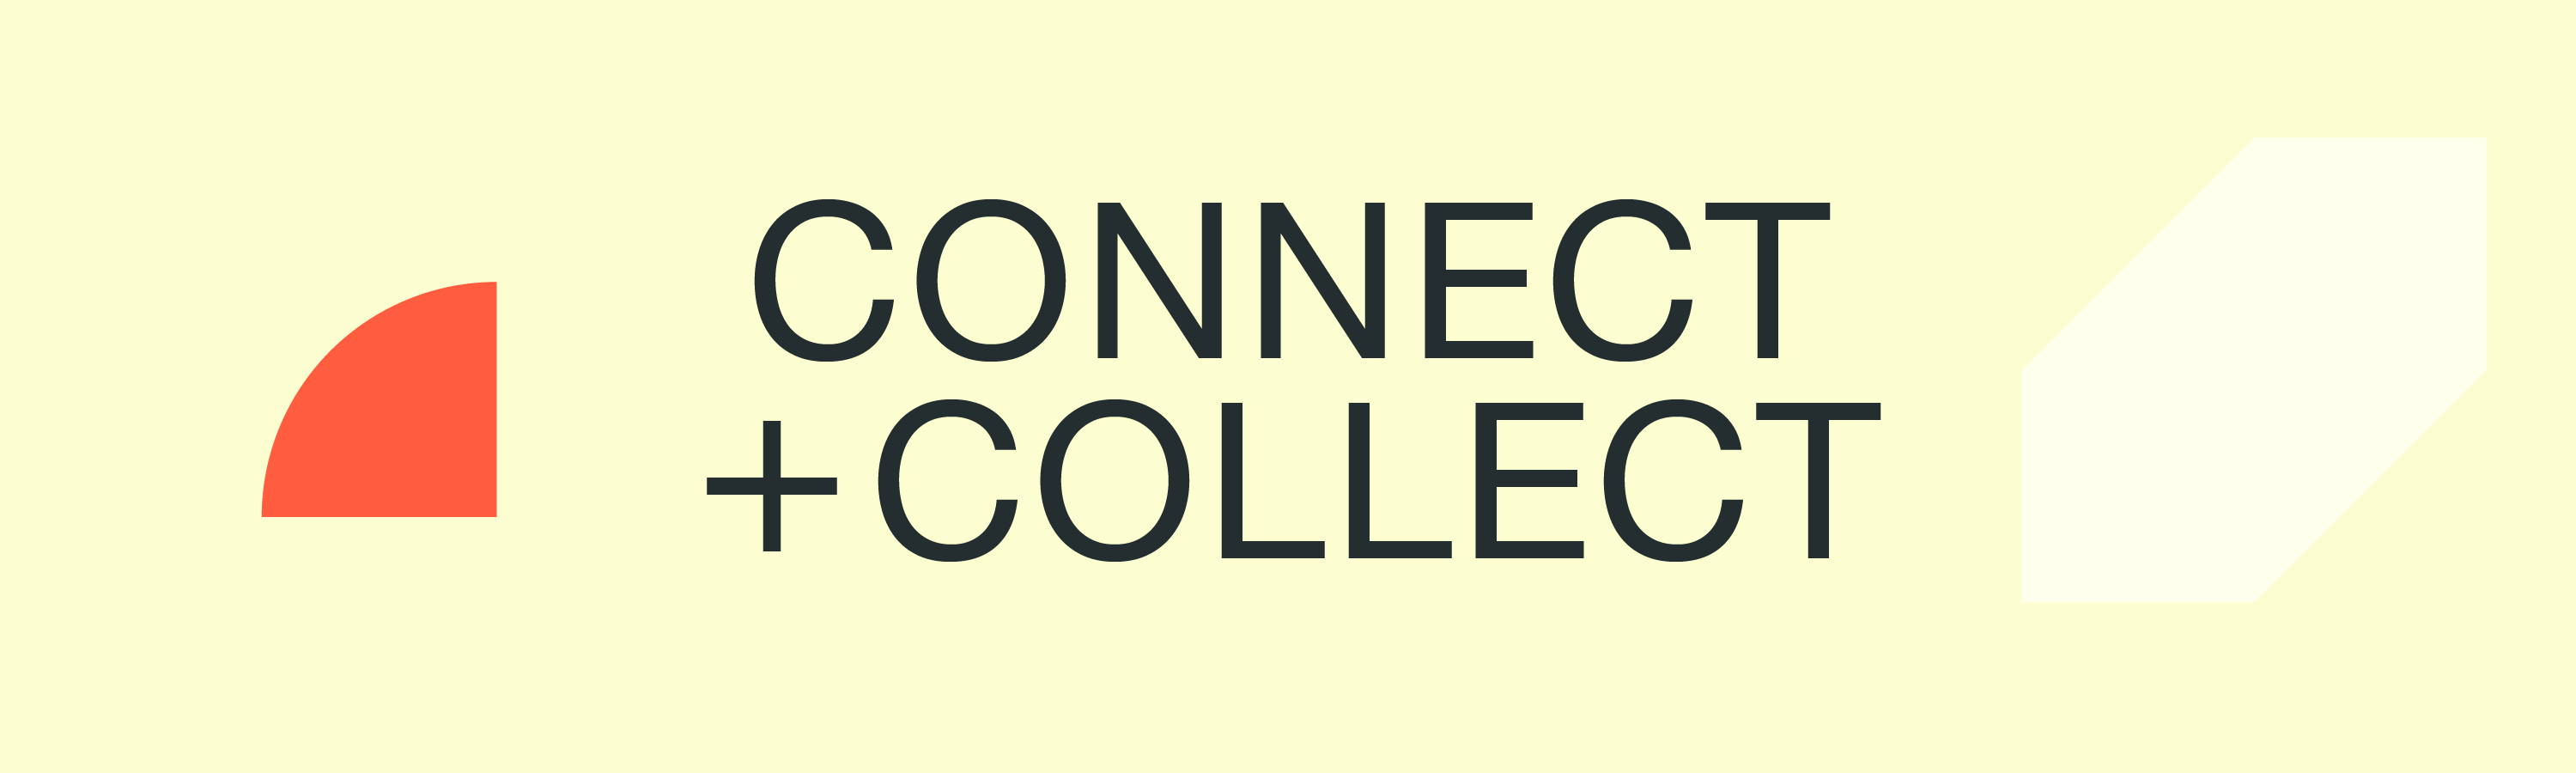 Connect + Collect